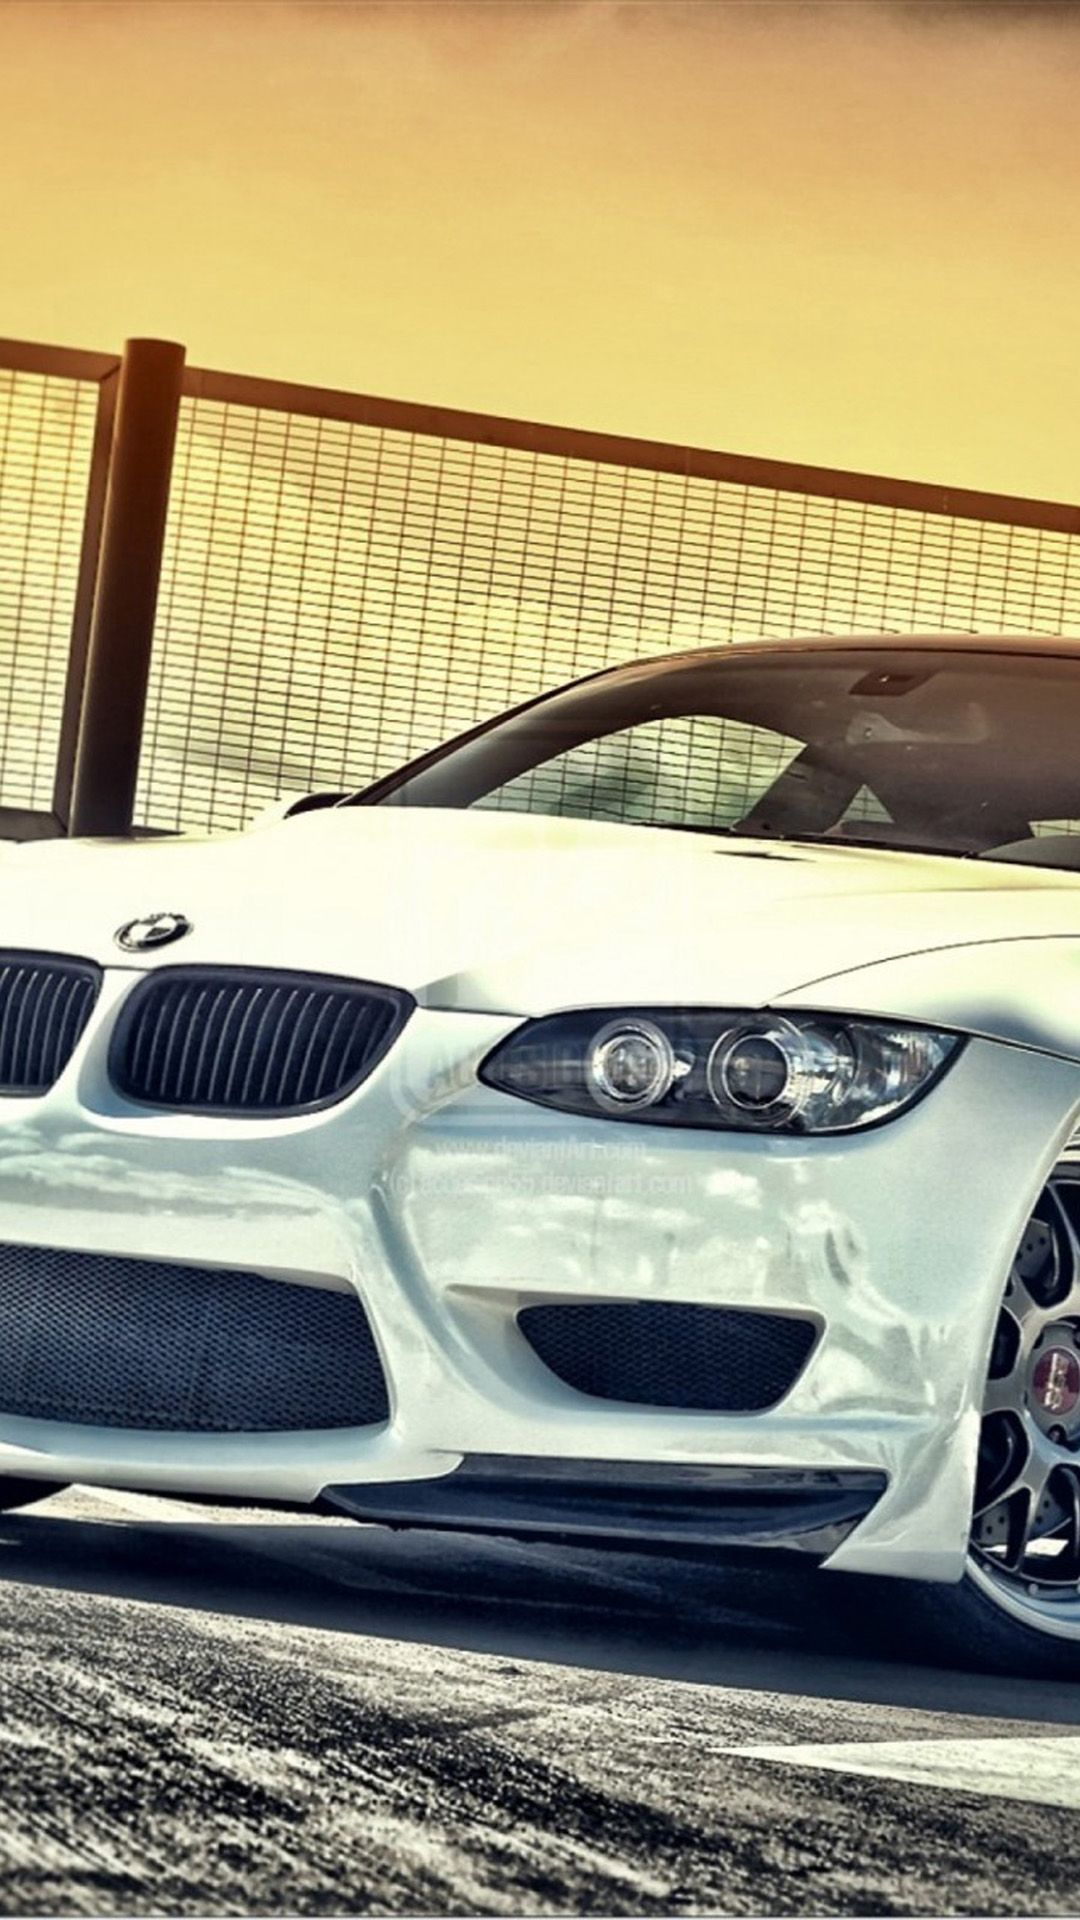 Iphone bmw wallpaper Group 74 1080x1920